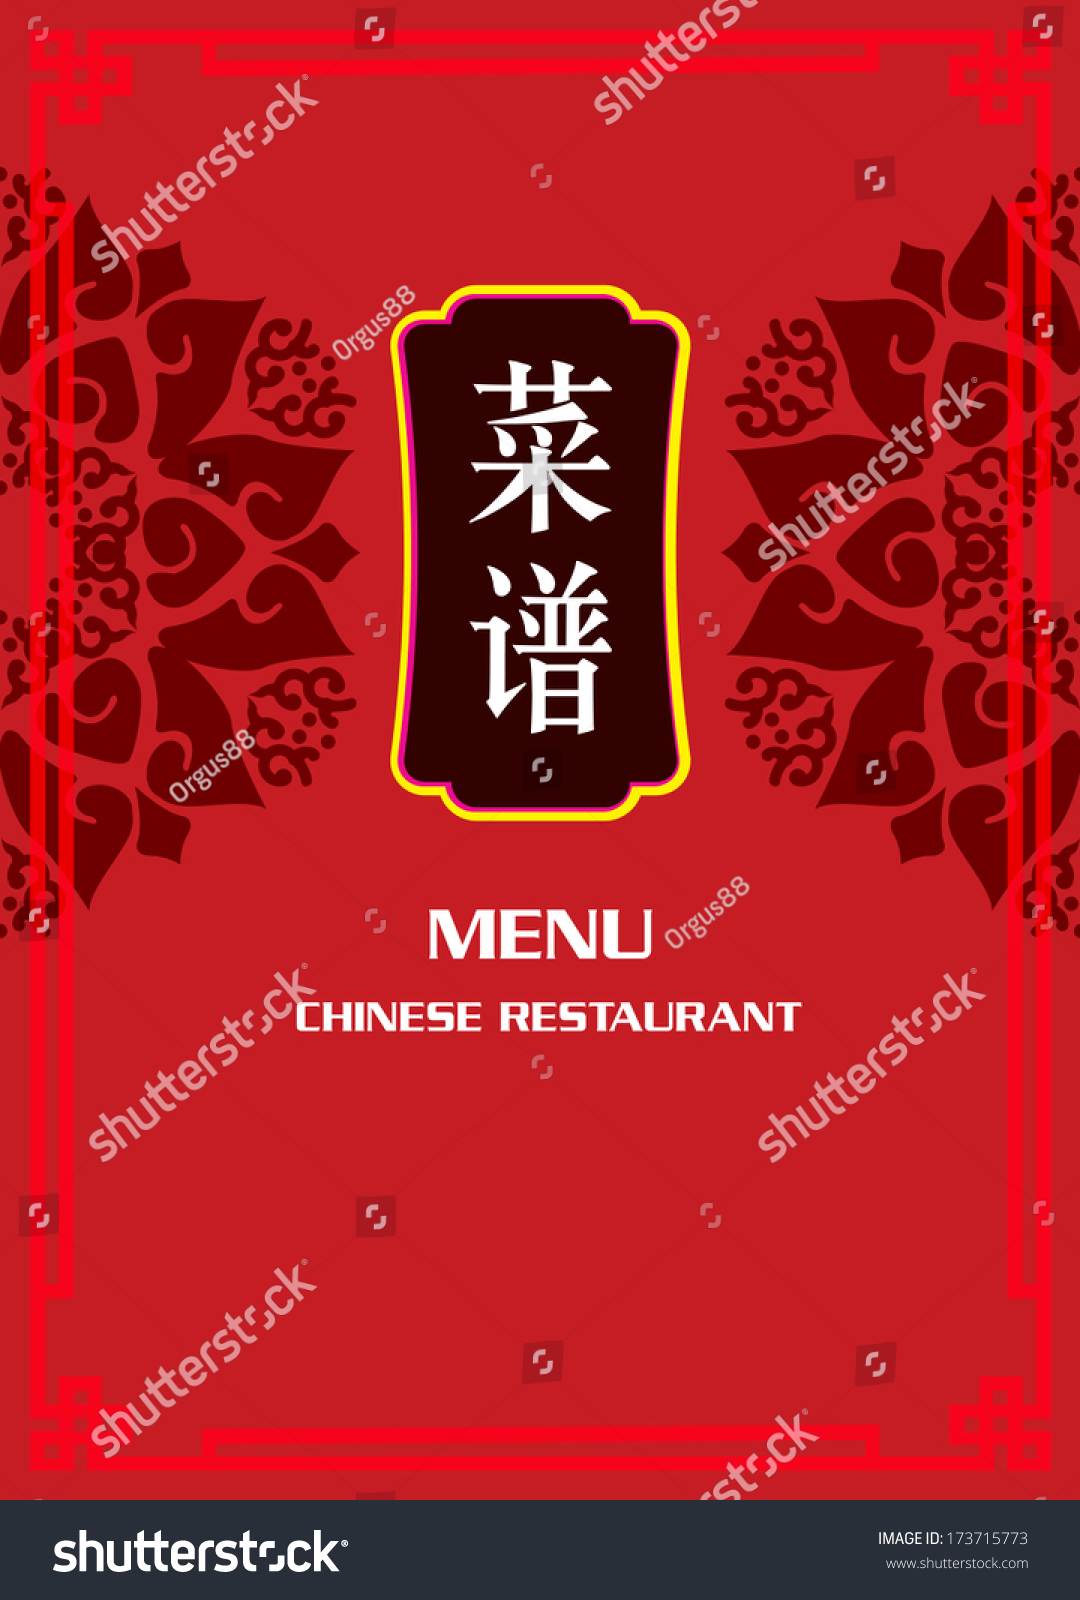 chinese restaurant menu design chinese food stock vector (royalty